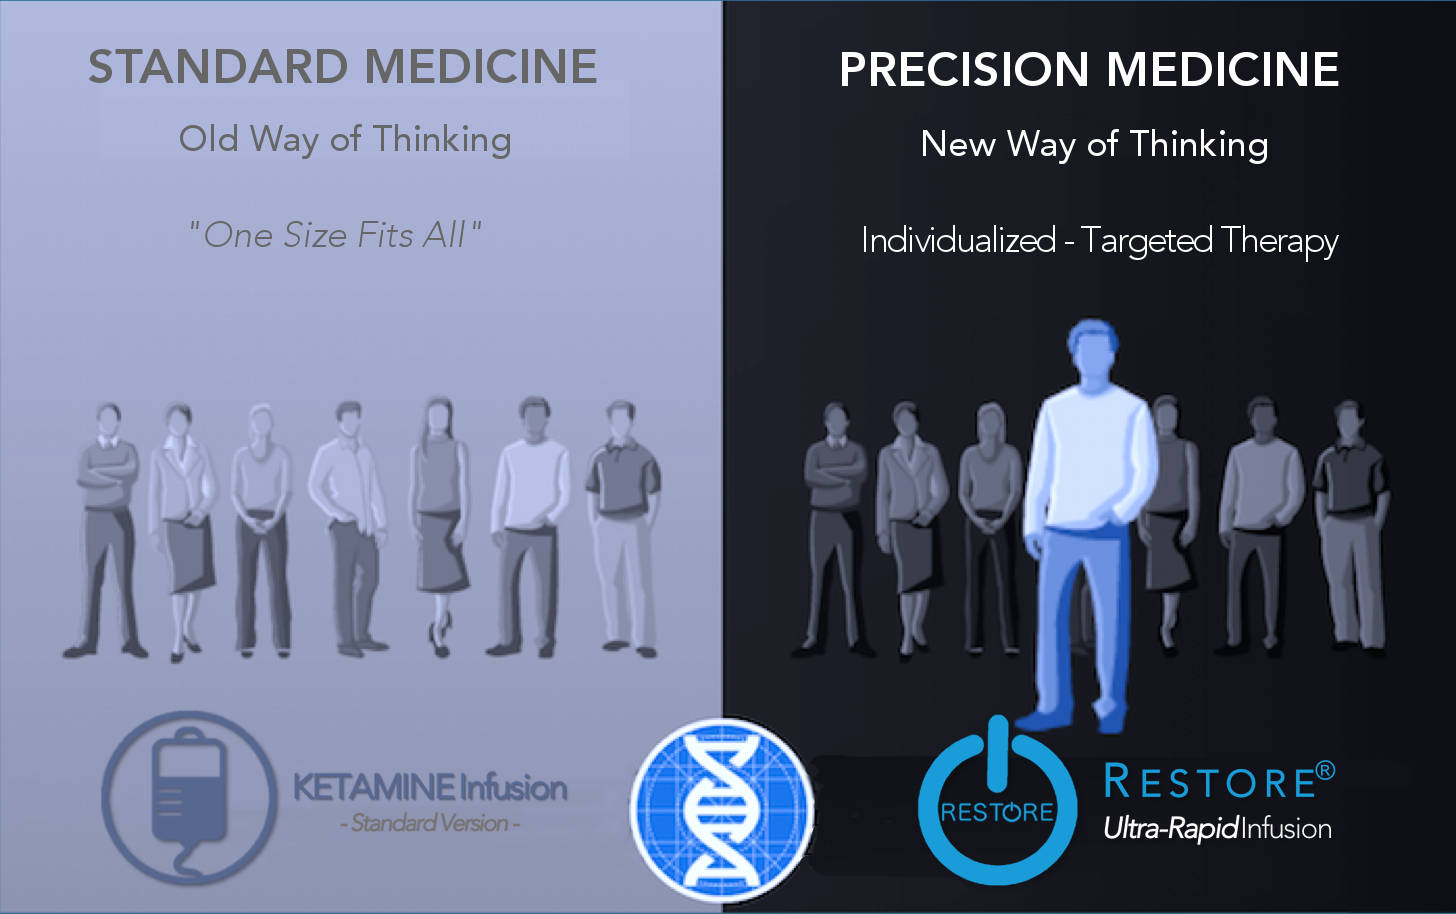 Precision Medicine and Personalized Care